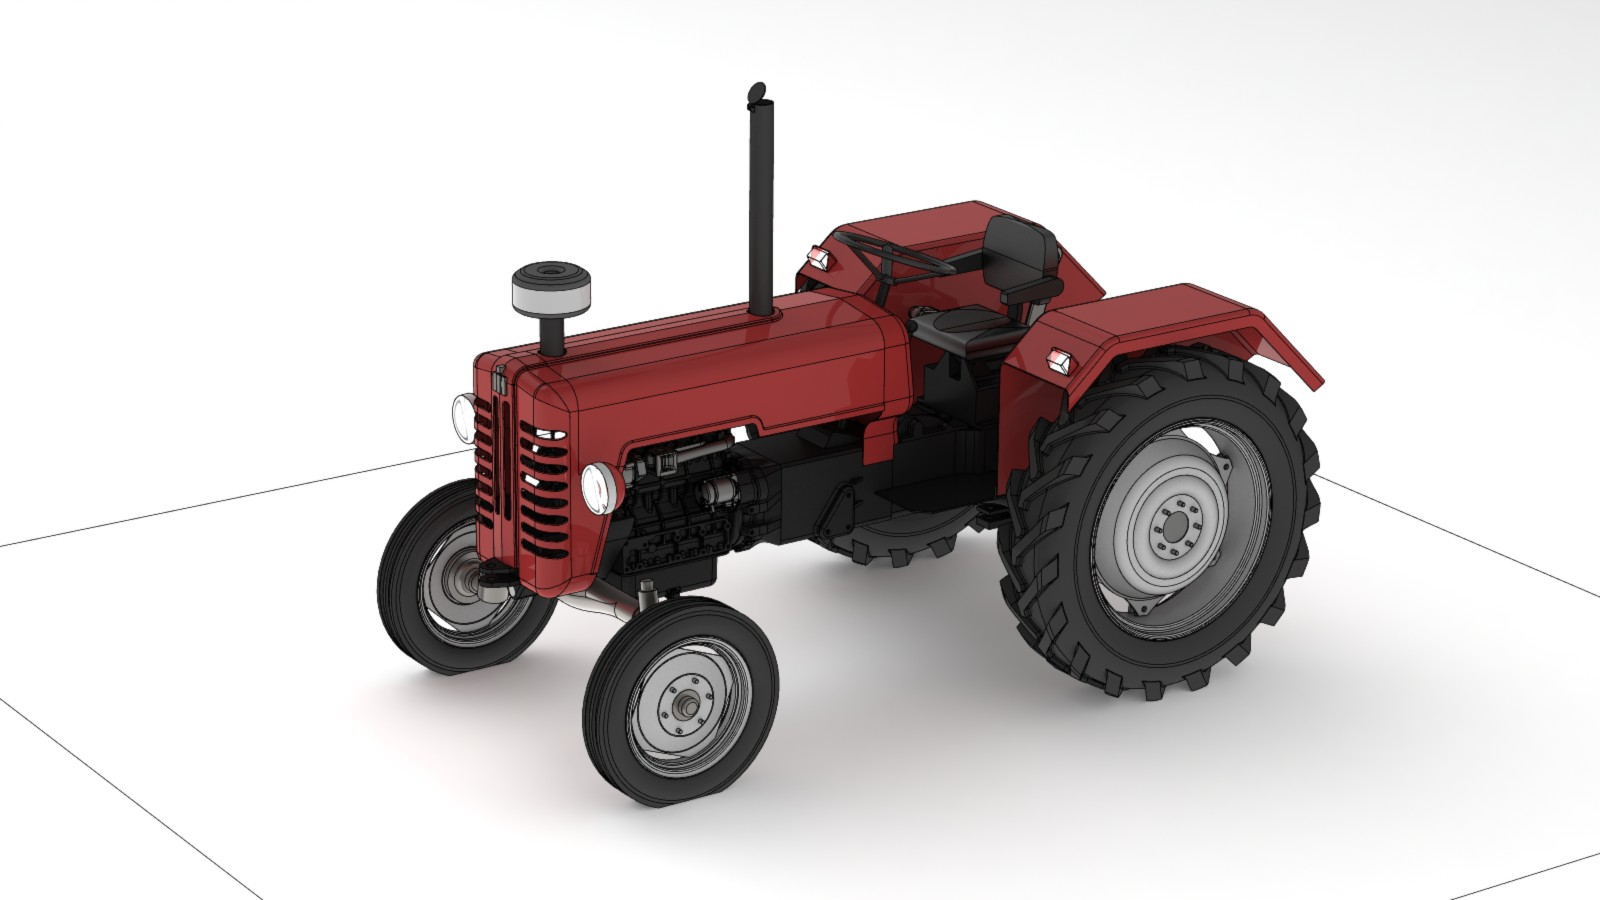 image of mc cormick d326 tractor thingiverse. Black Bedroom Furniture Sets. Home Design Ideas